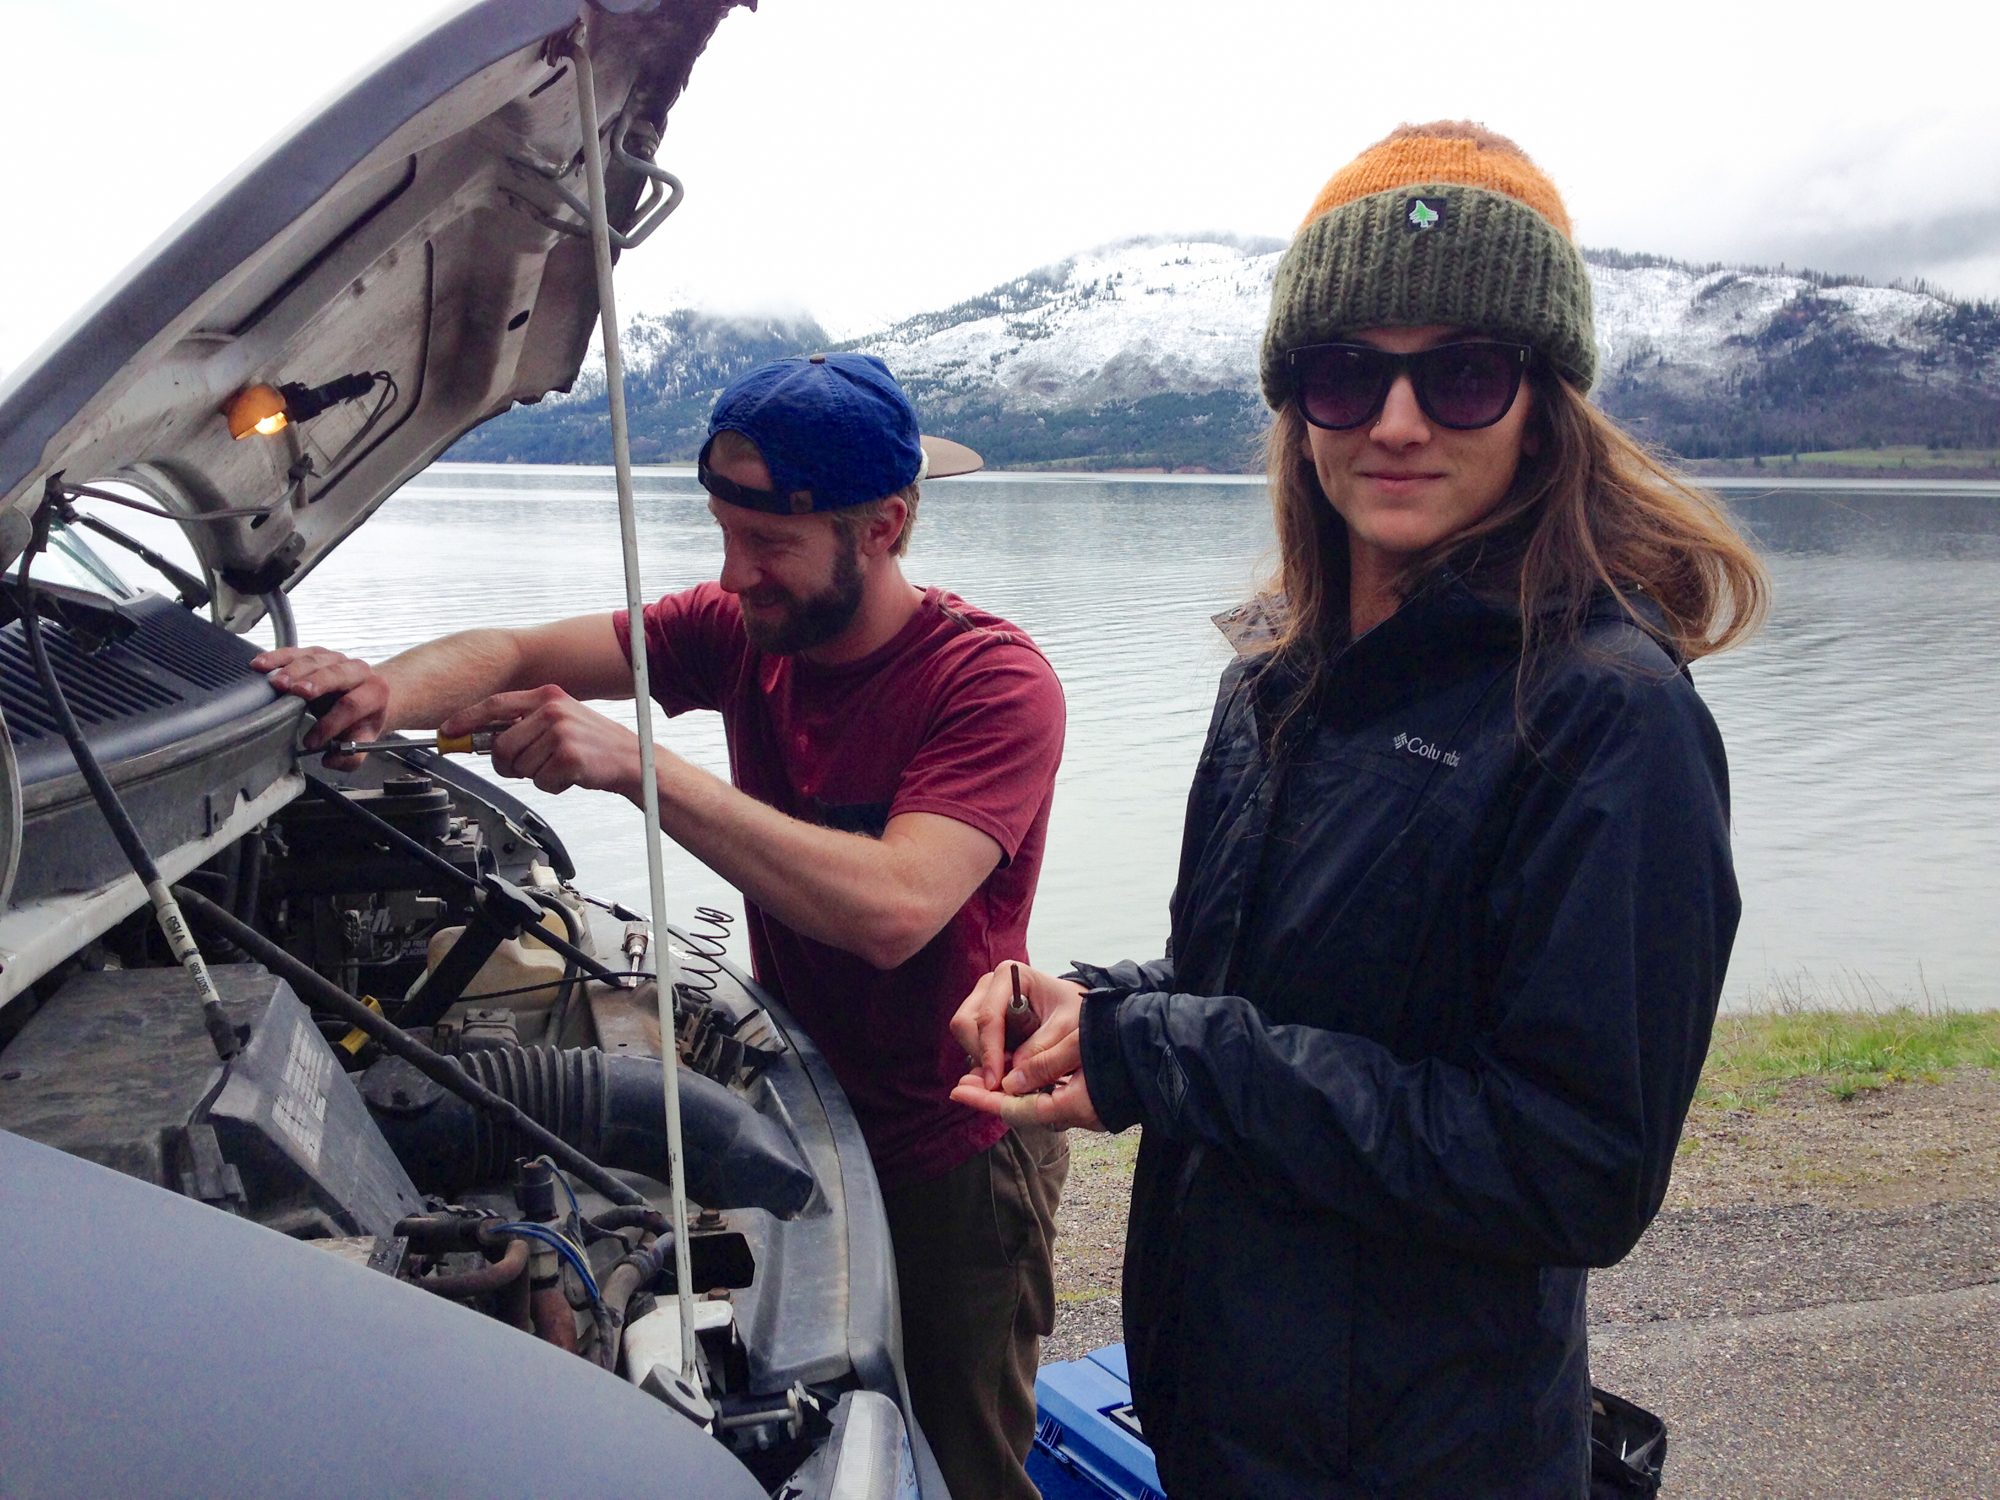 Living out of a vehicle and traveling full time means we are bound to have some mechanical issues. But somehow when things go wrong we always stay in good spirits. Shay is the perfect roadside assistant!